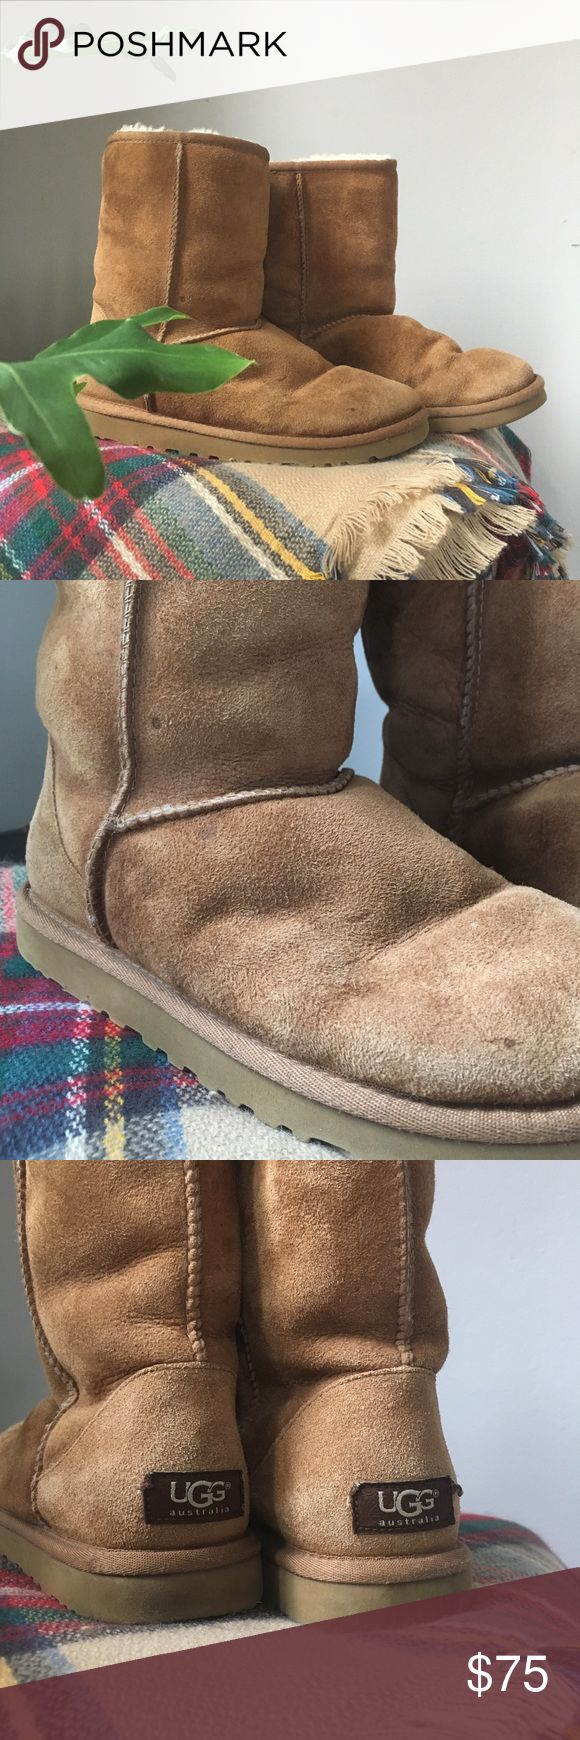 Ugg•Classic Short Genuine Shearling Boots Pre-loved Uggs in good used condition. Very minor wear on the suede. Be sure to scotch guard these to prevent future damage. Can be worn folded over. Lining is clean & odor free. USA 6 EU 37 Classic Chestnut color. UGG Shoes Winter & Rain Boots